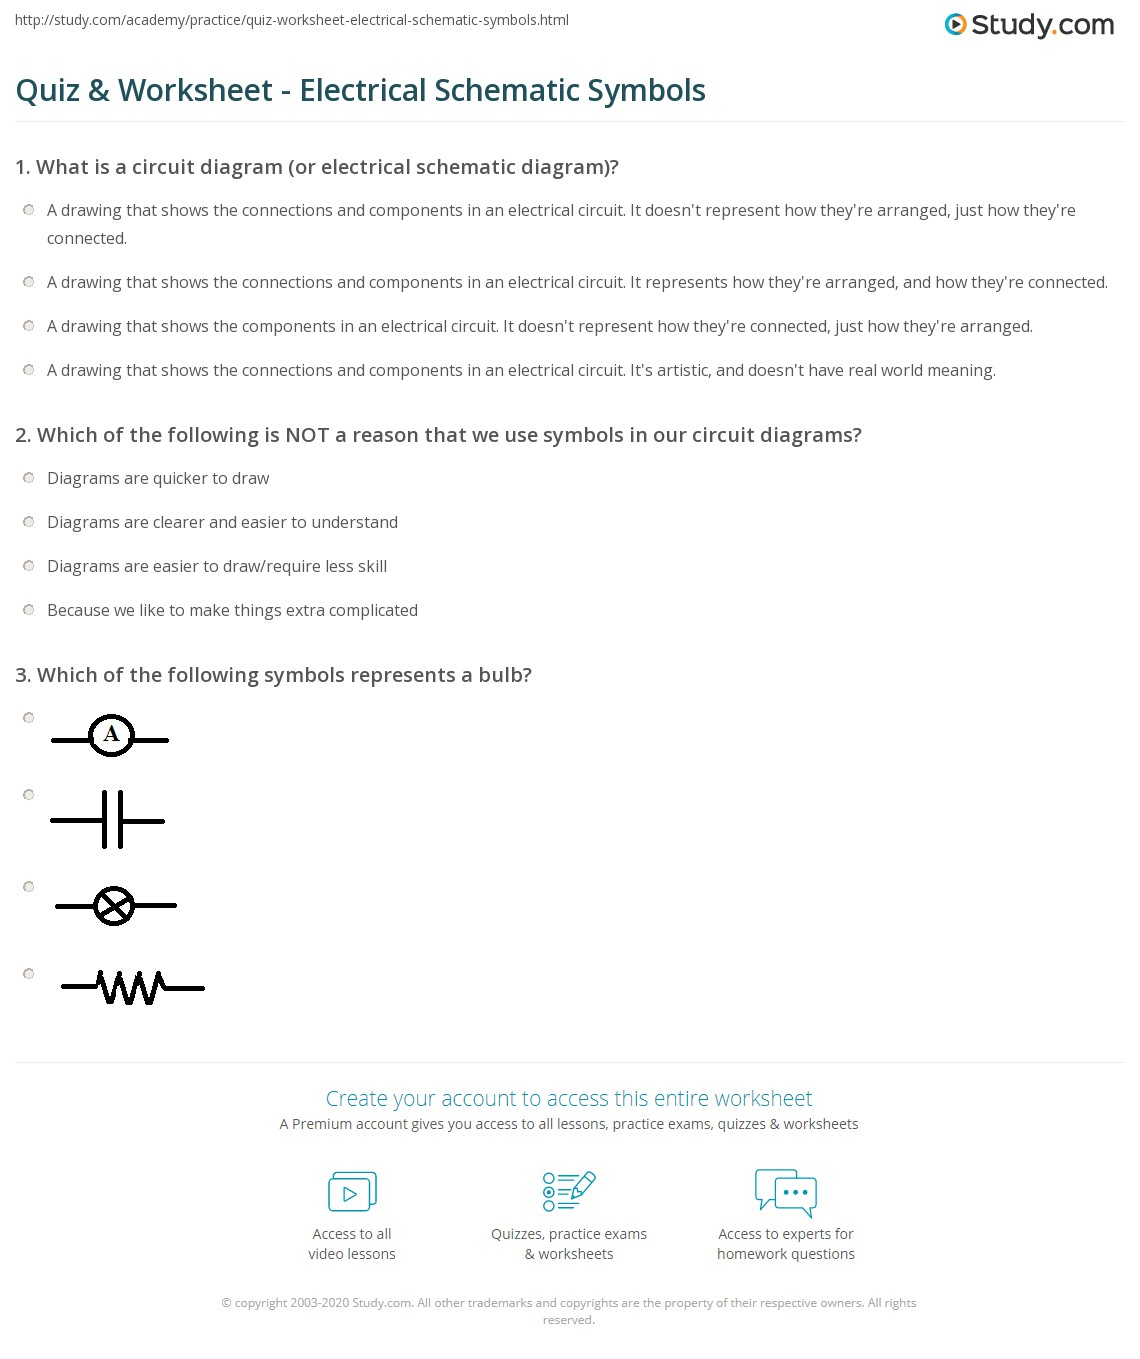 quiz worksheet electrical schematic symbols quiz & worksheet electrical schematic symbols study com wiring schematic practice at cos-gaming.co